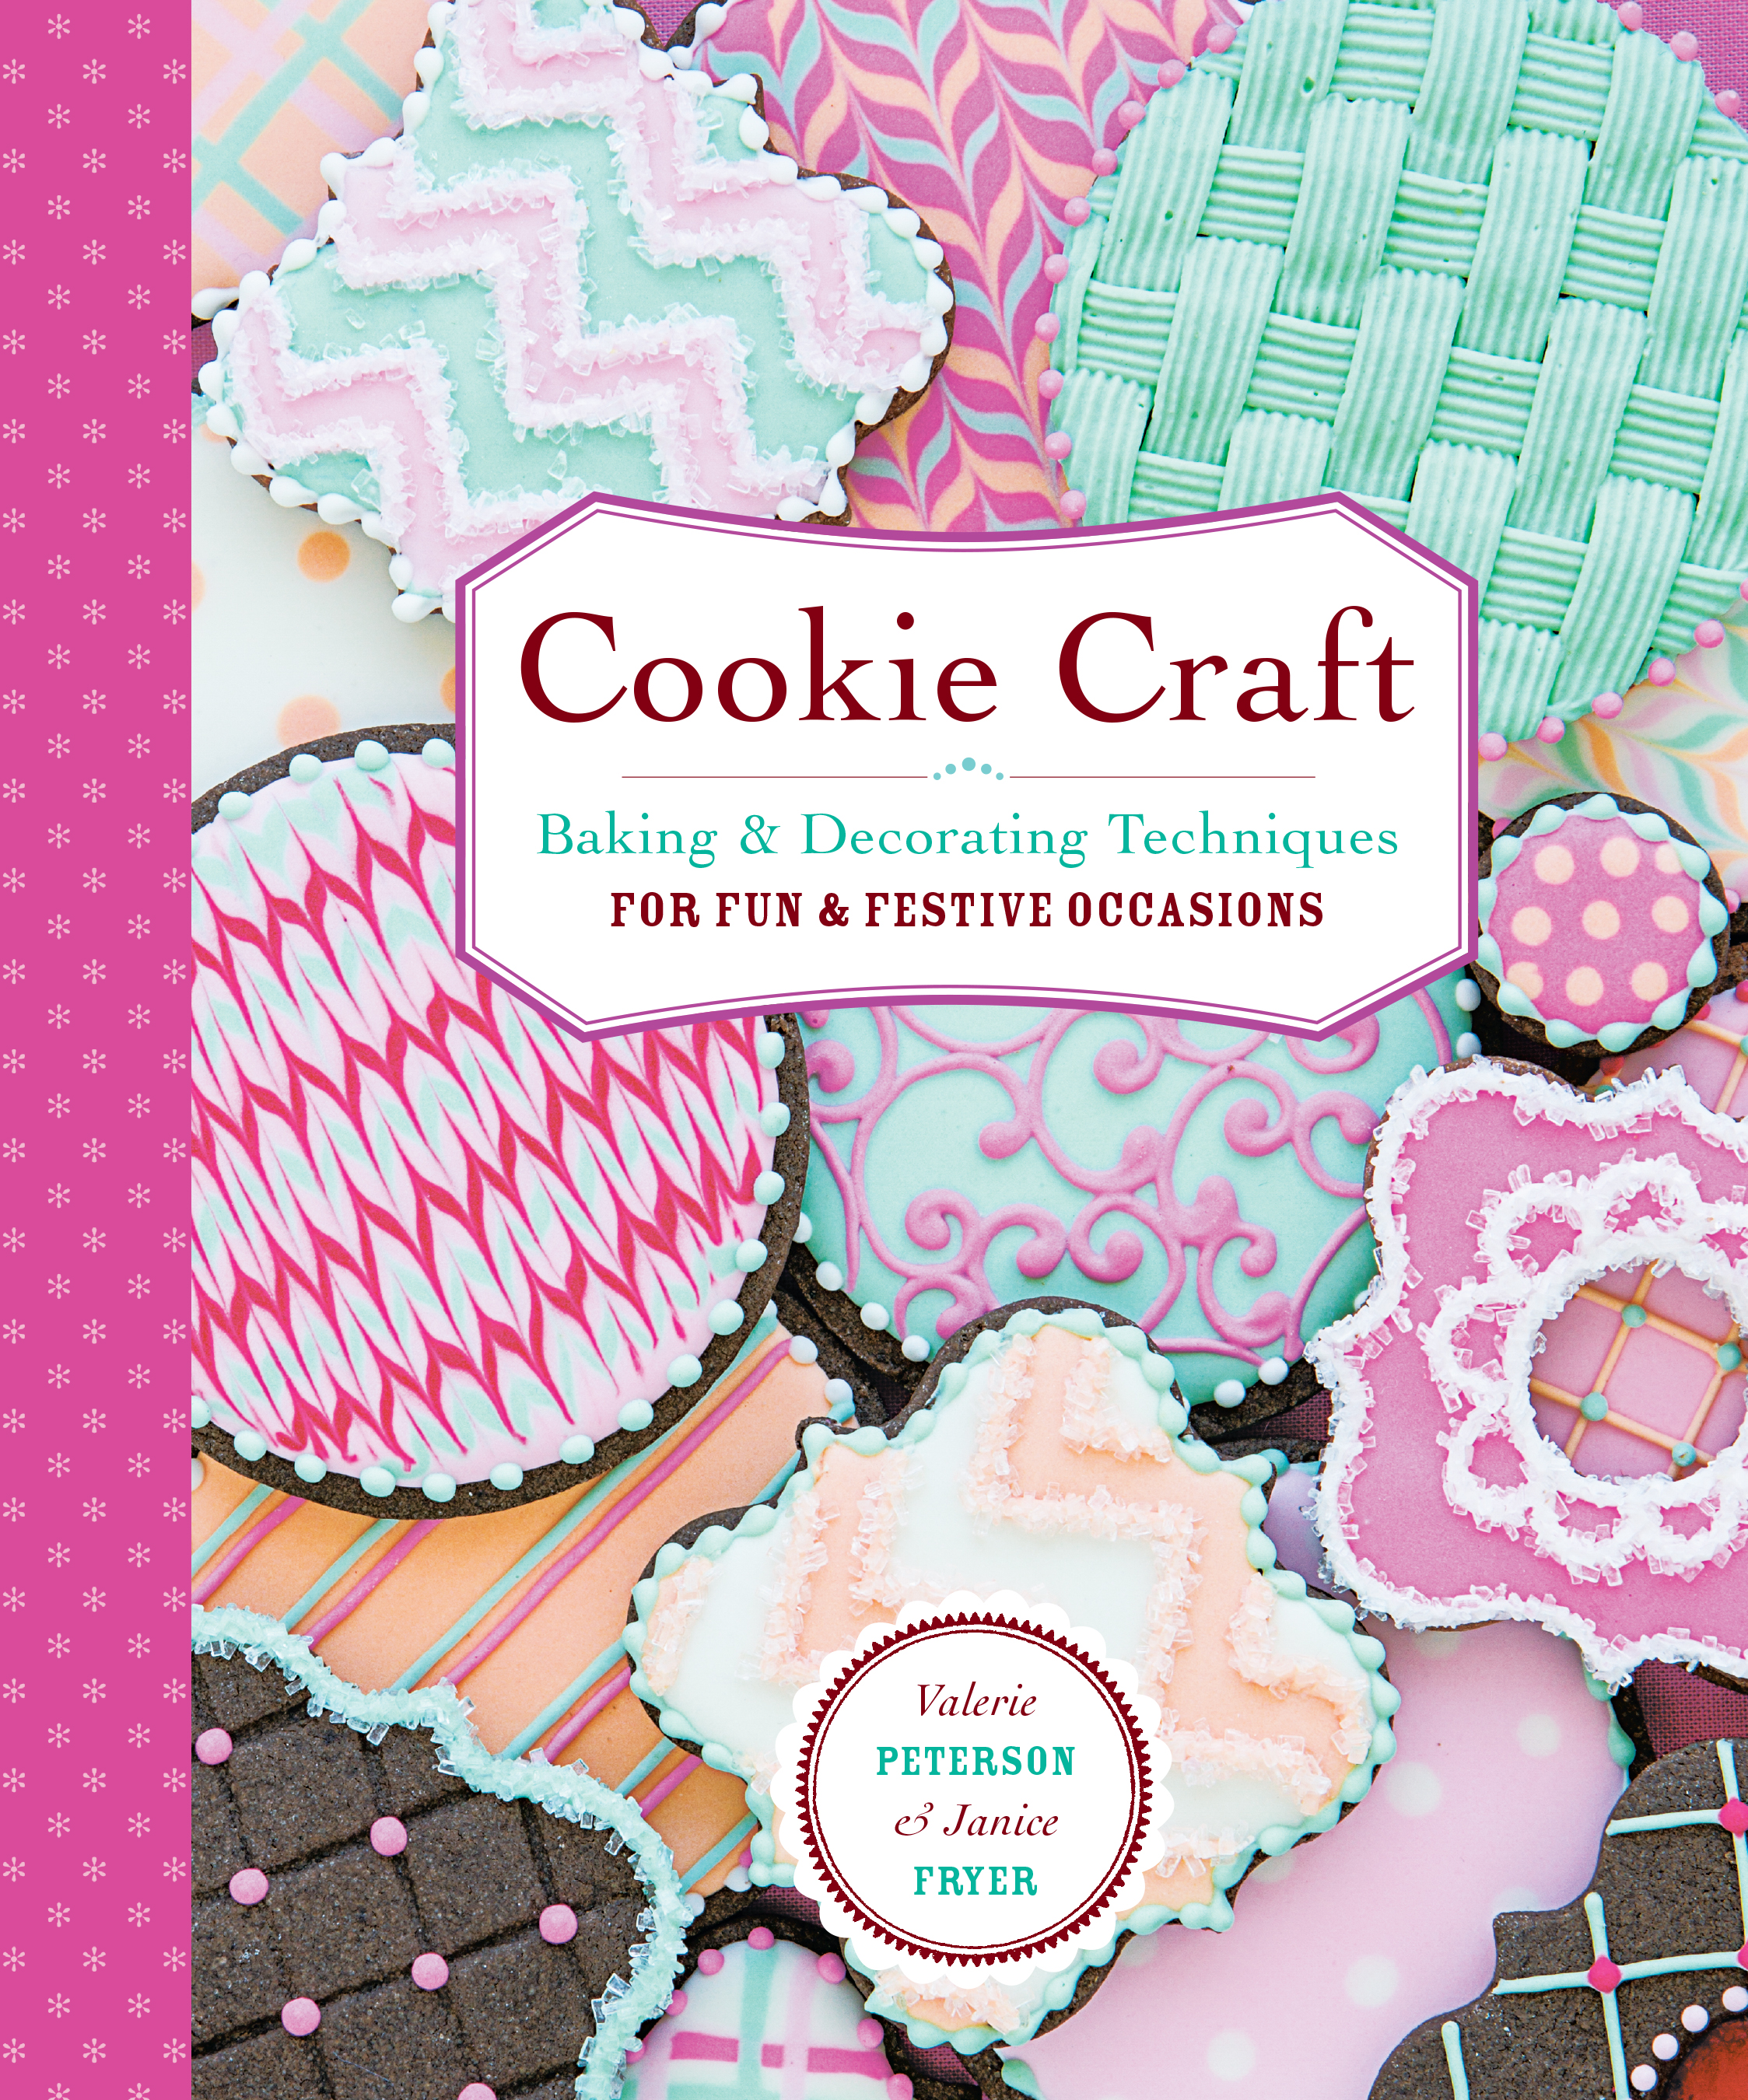 Cookie Craft From Baking to Luster Dust, Designs and Techniques for Creative Cookie Occasions - Valerie Peterson